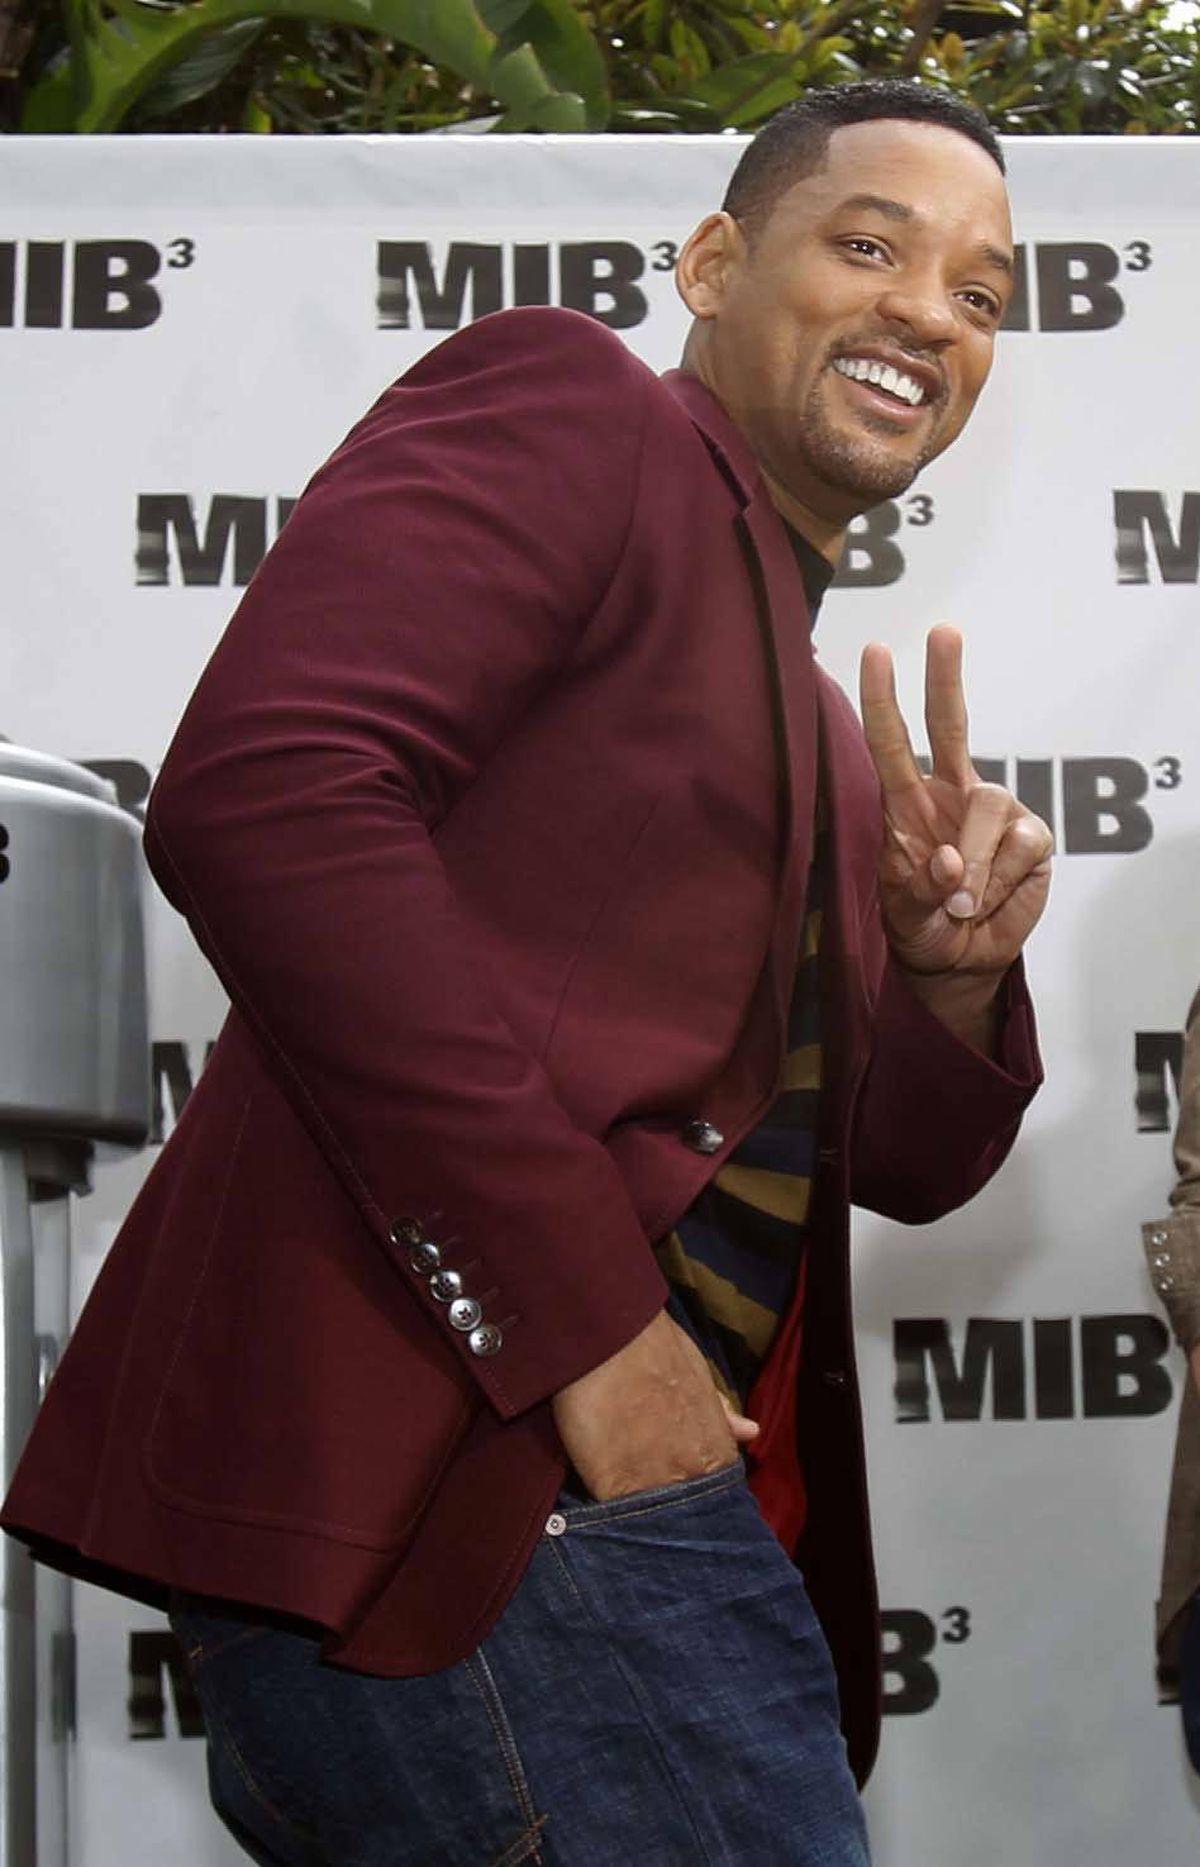 """Will Smith, desperate to save his life, actually flashes a peace sign while promoting """"Men in Black III"""" in Los Angeles last week."""